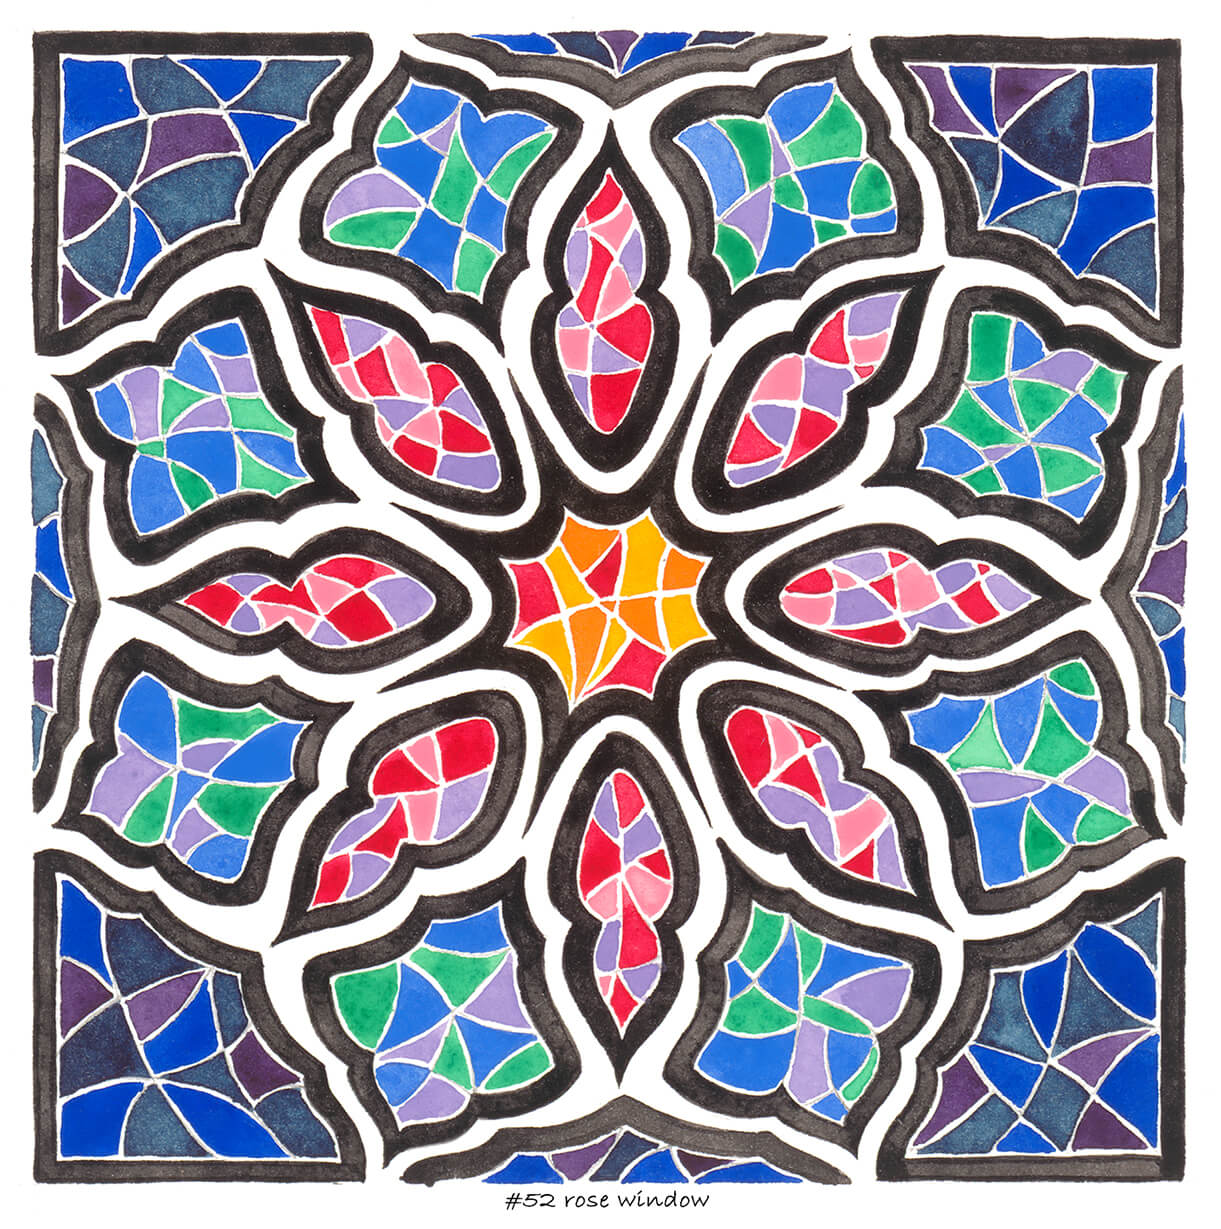 #52 rose window